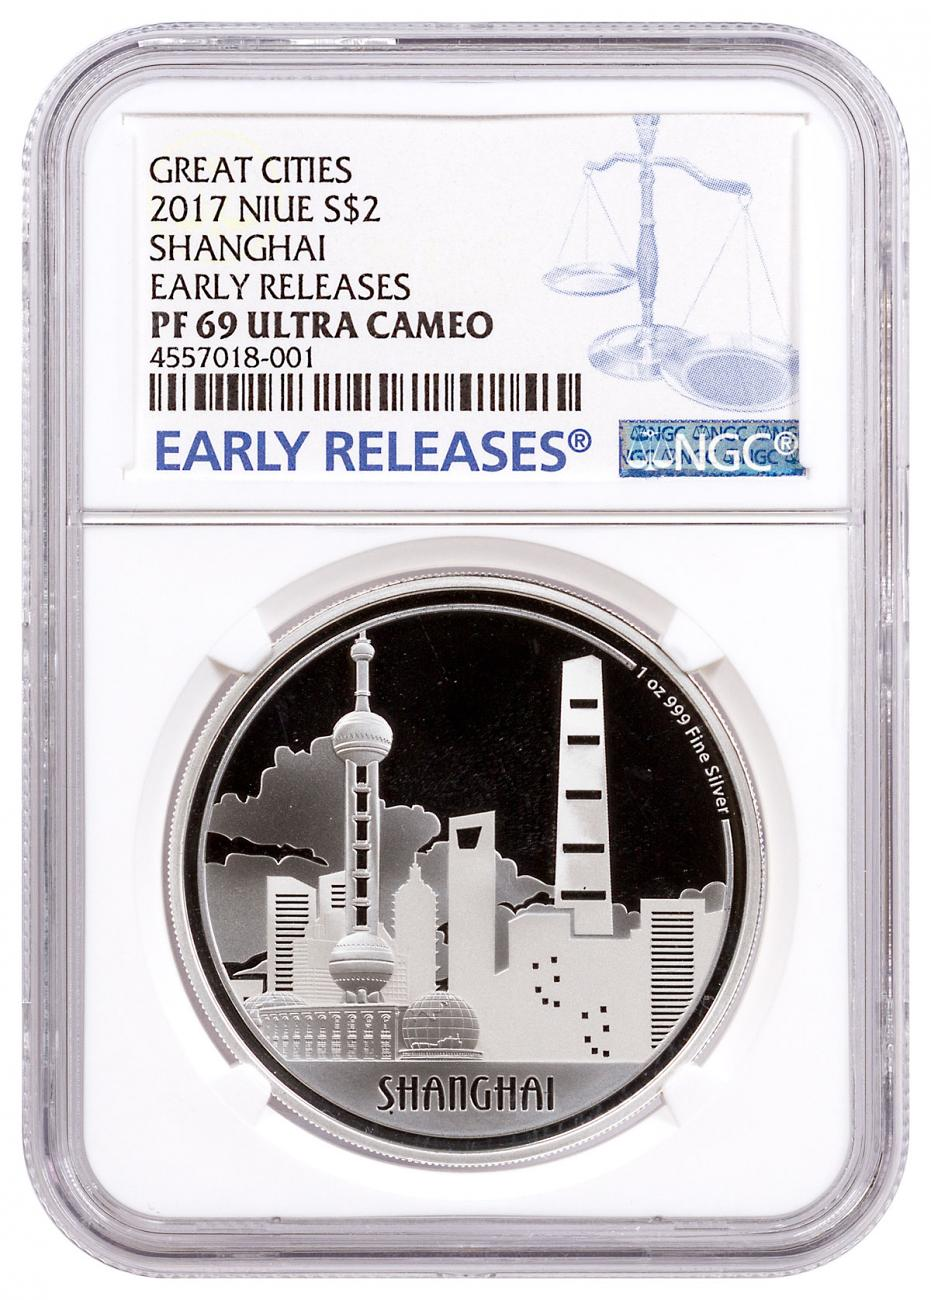 2017 Niue Great Cities - Shanghai 1 oz Silver Proof $2 Coin NGC PF69 UC ER